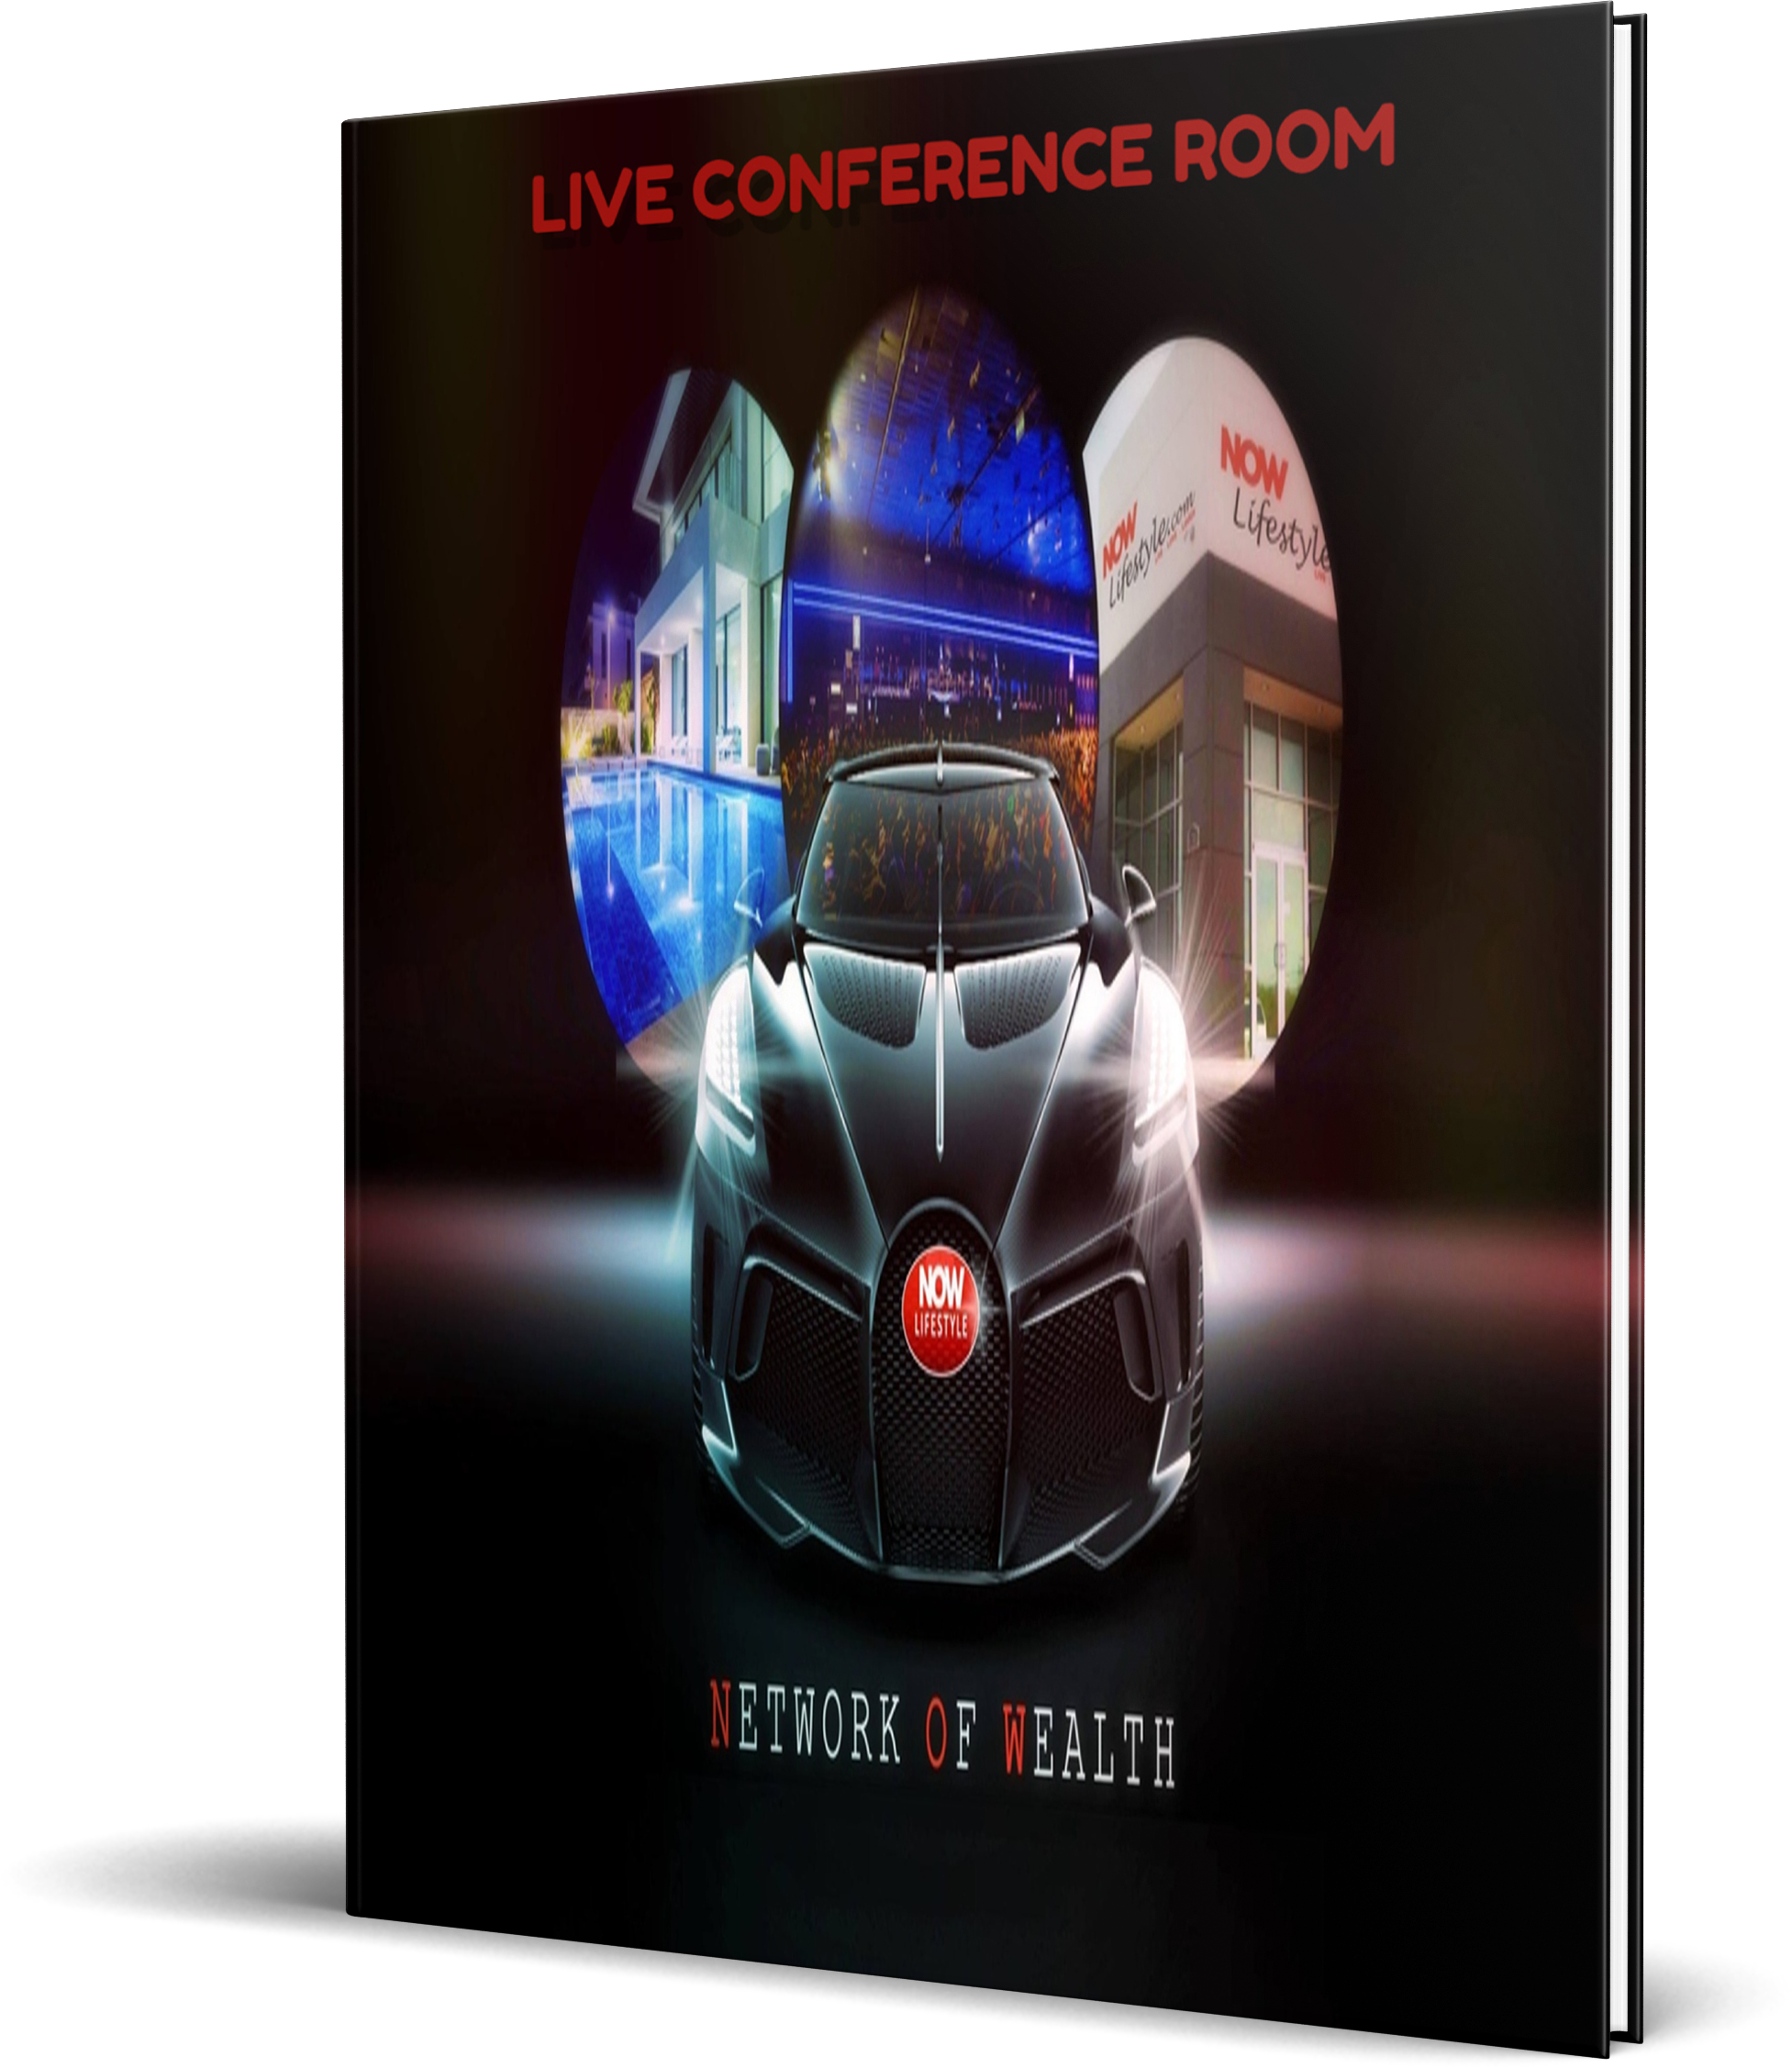 005-Live-Conference-Room-hardcover